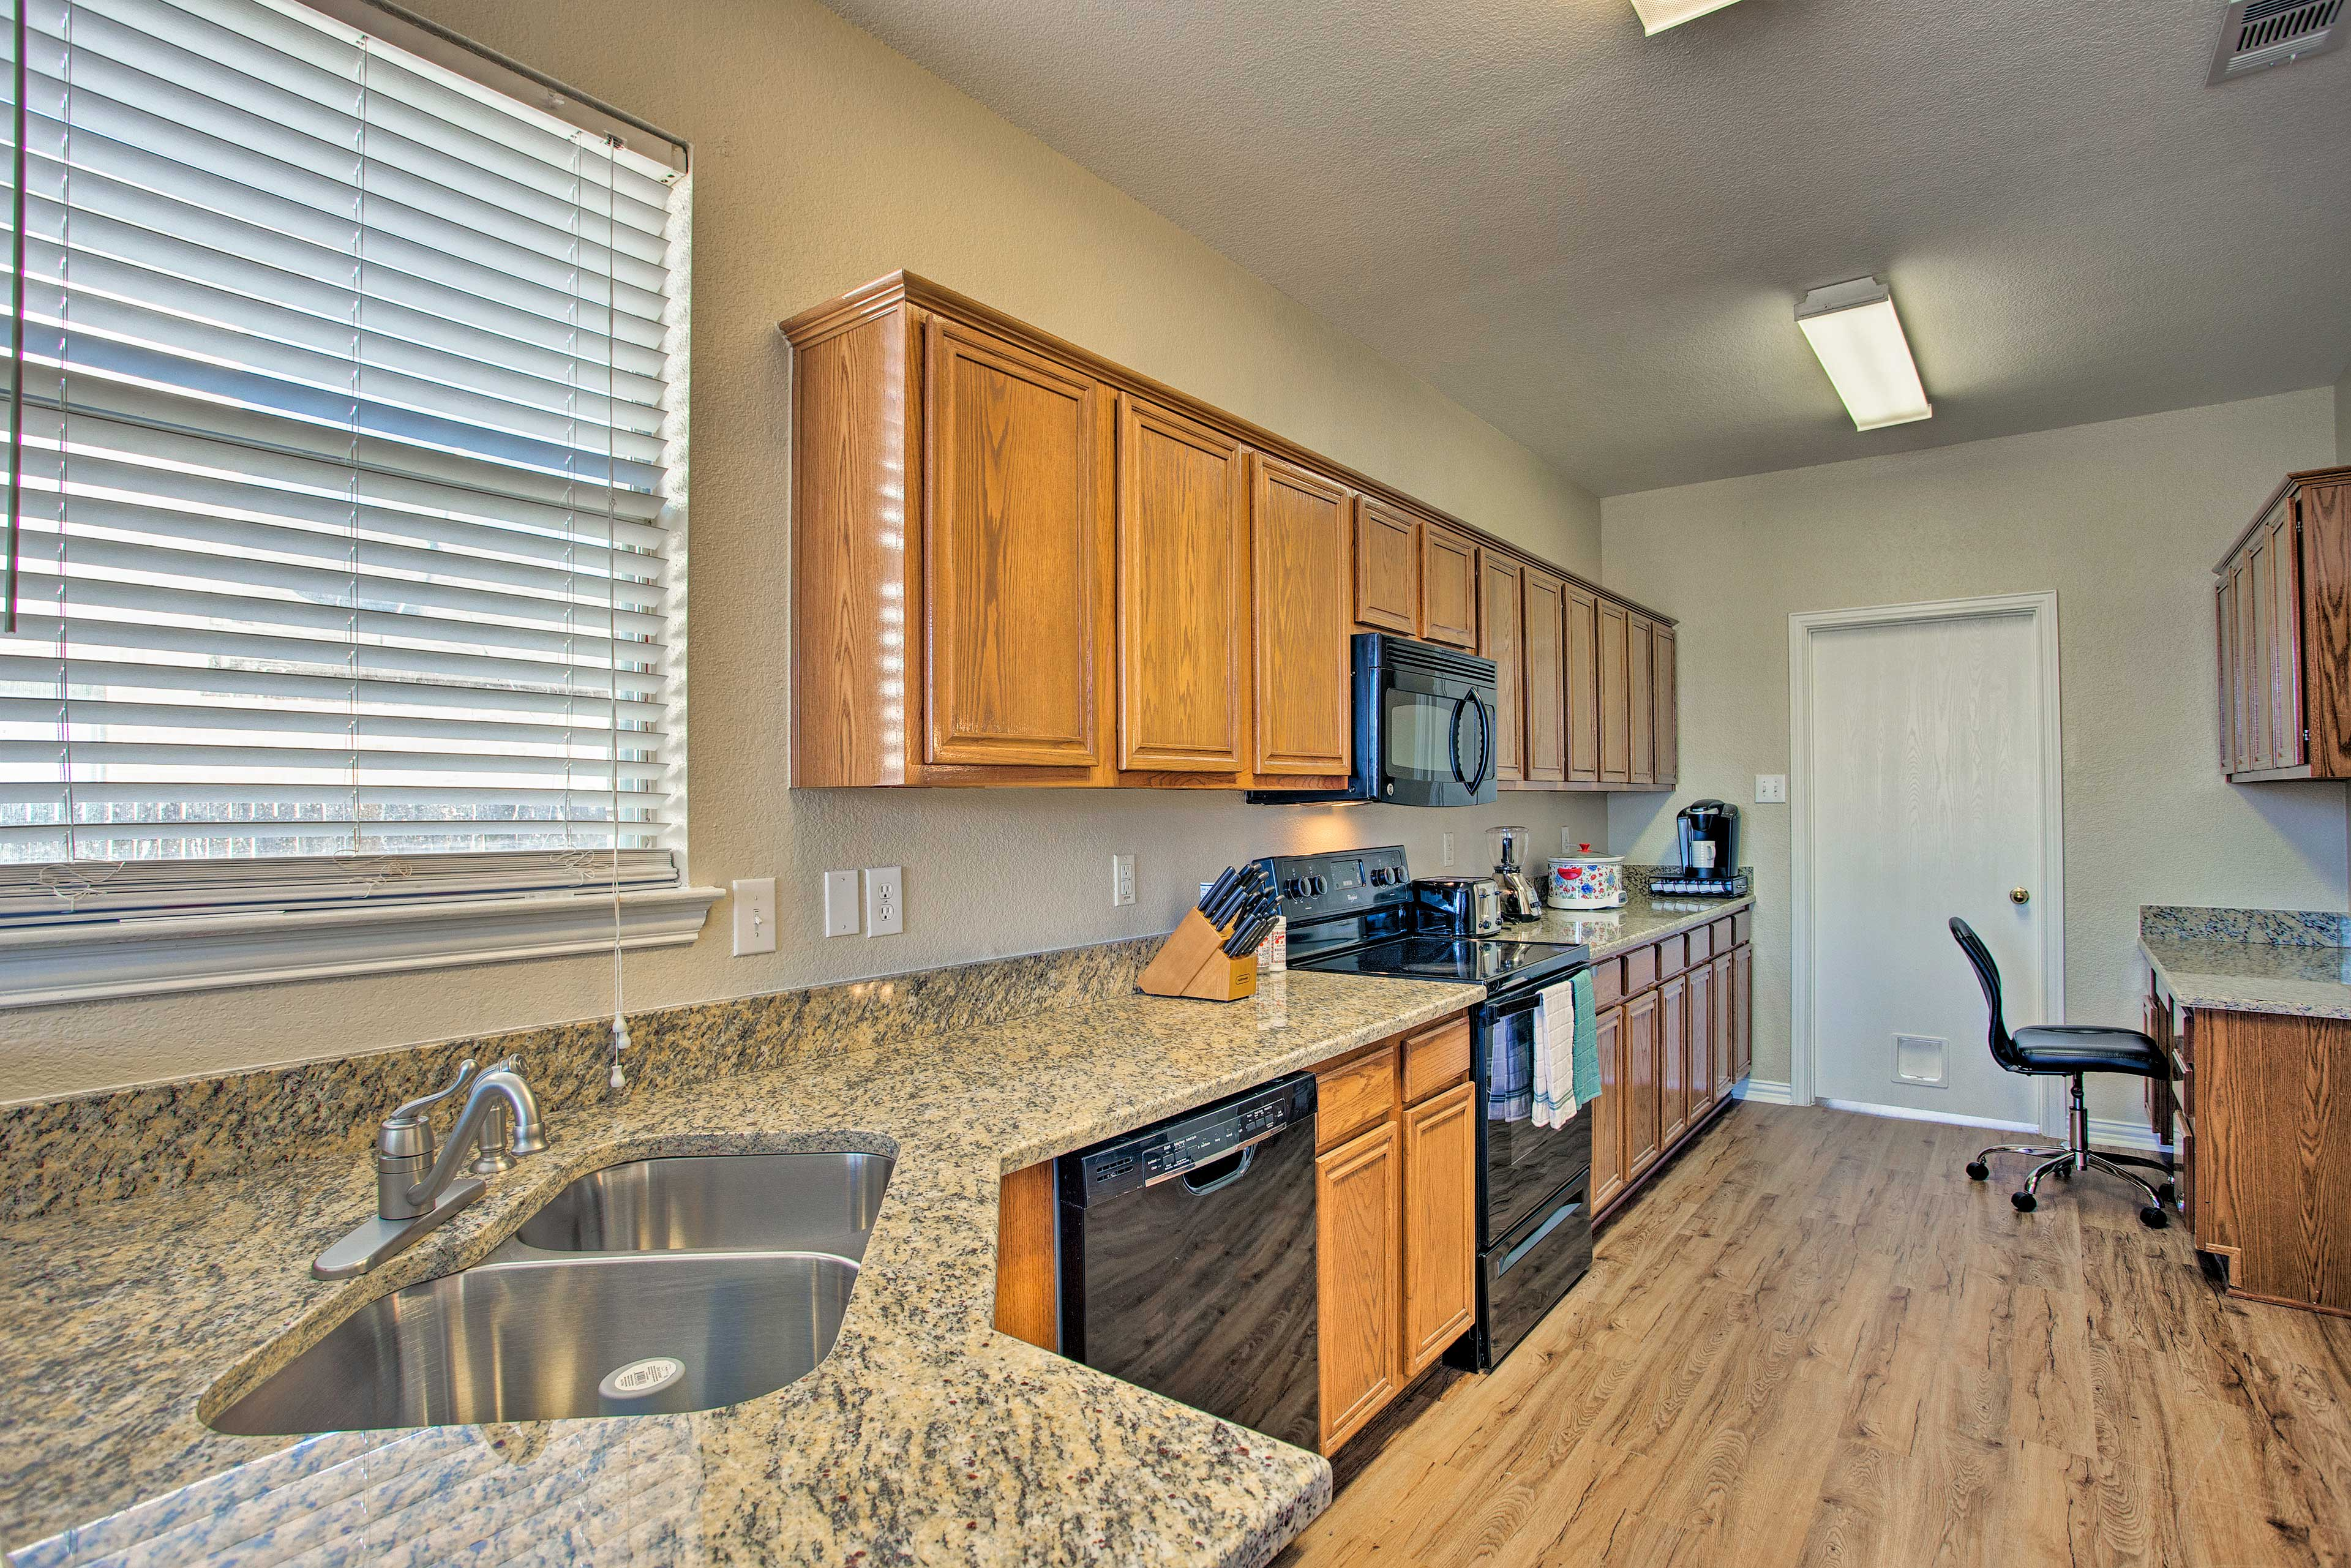 Prepare meals together in this spacious kitchen.